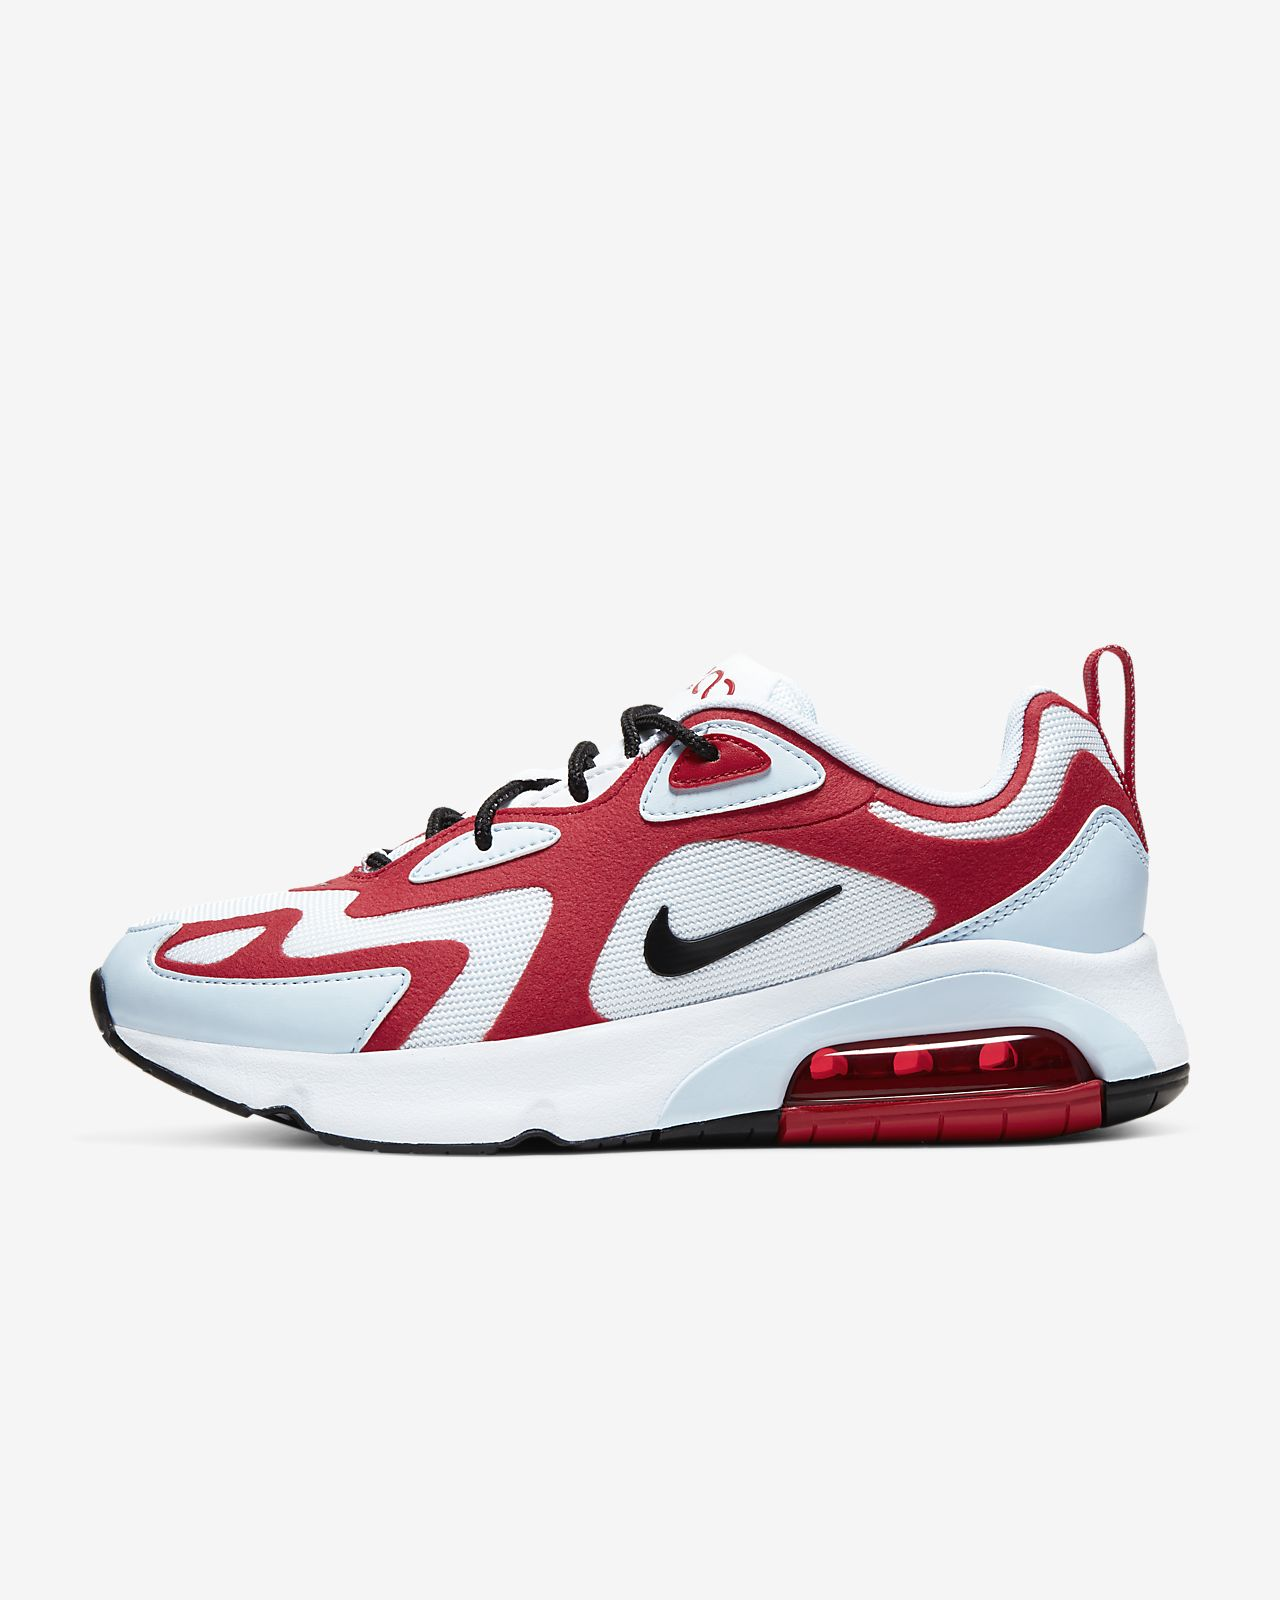 Nike Air Max 200 Sneakers WhiteBlackGym RedHalf Blue